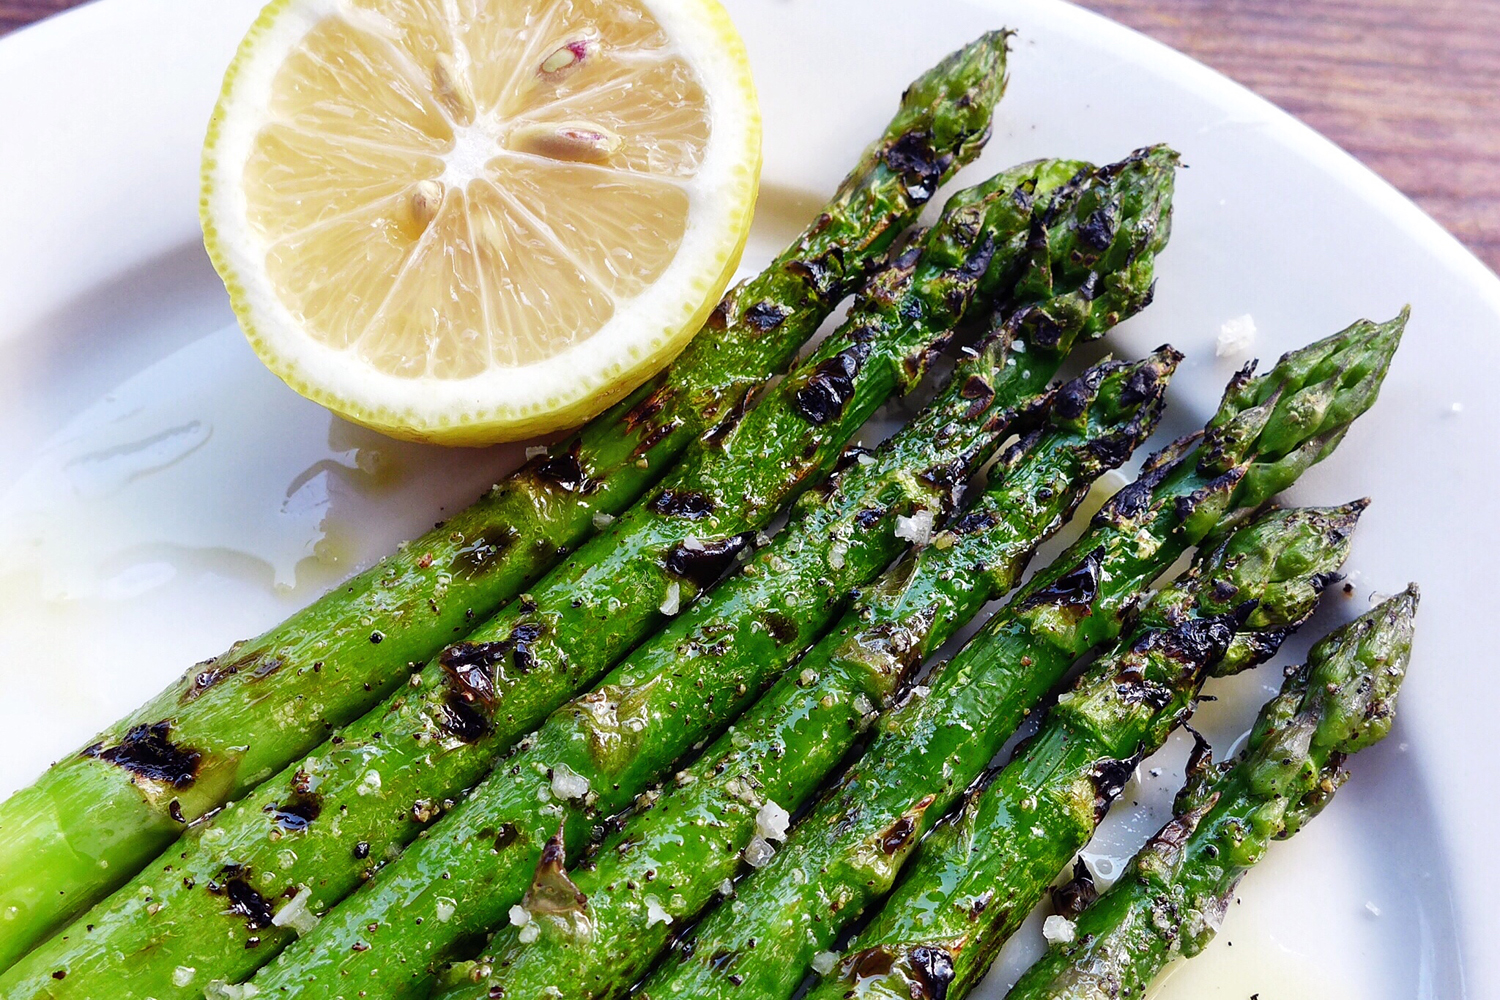 The Grilled Asparagus